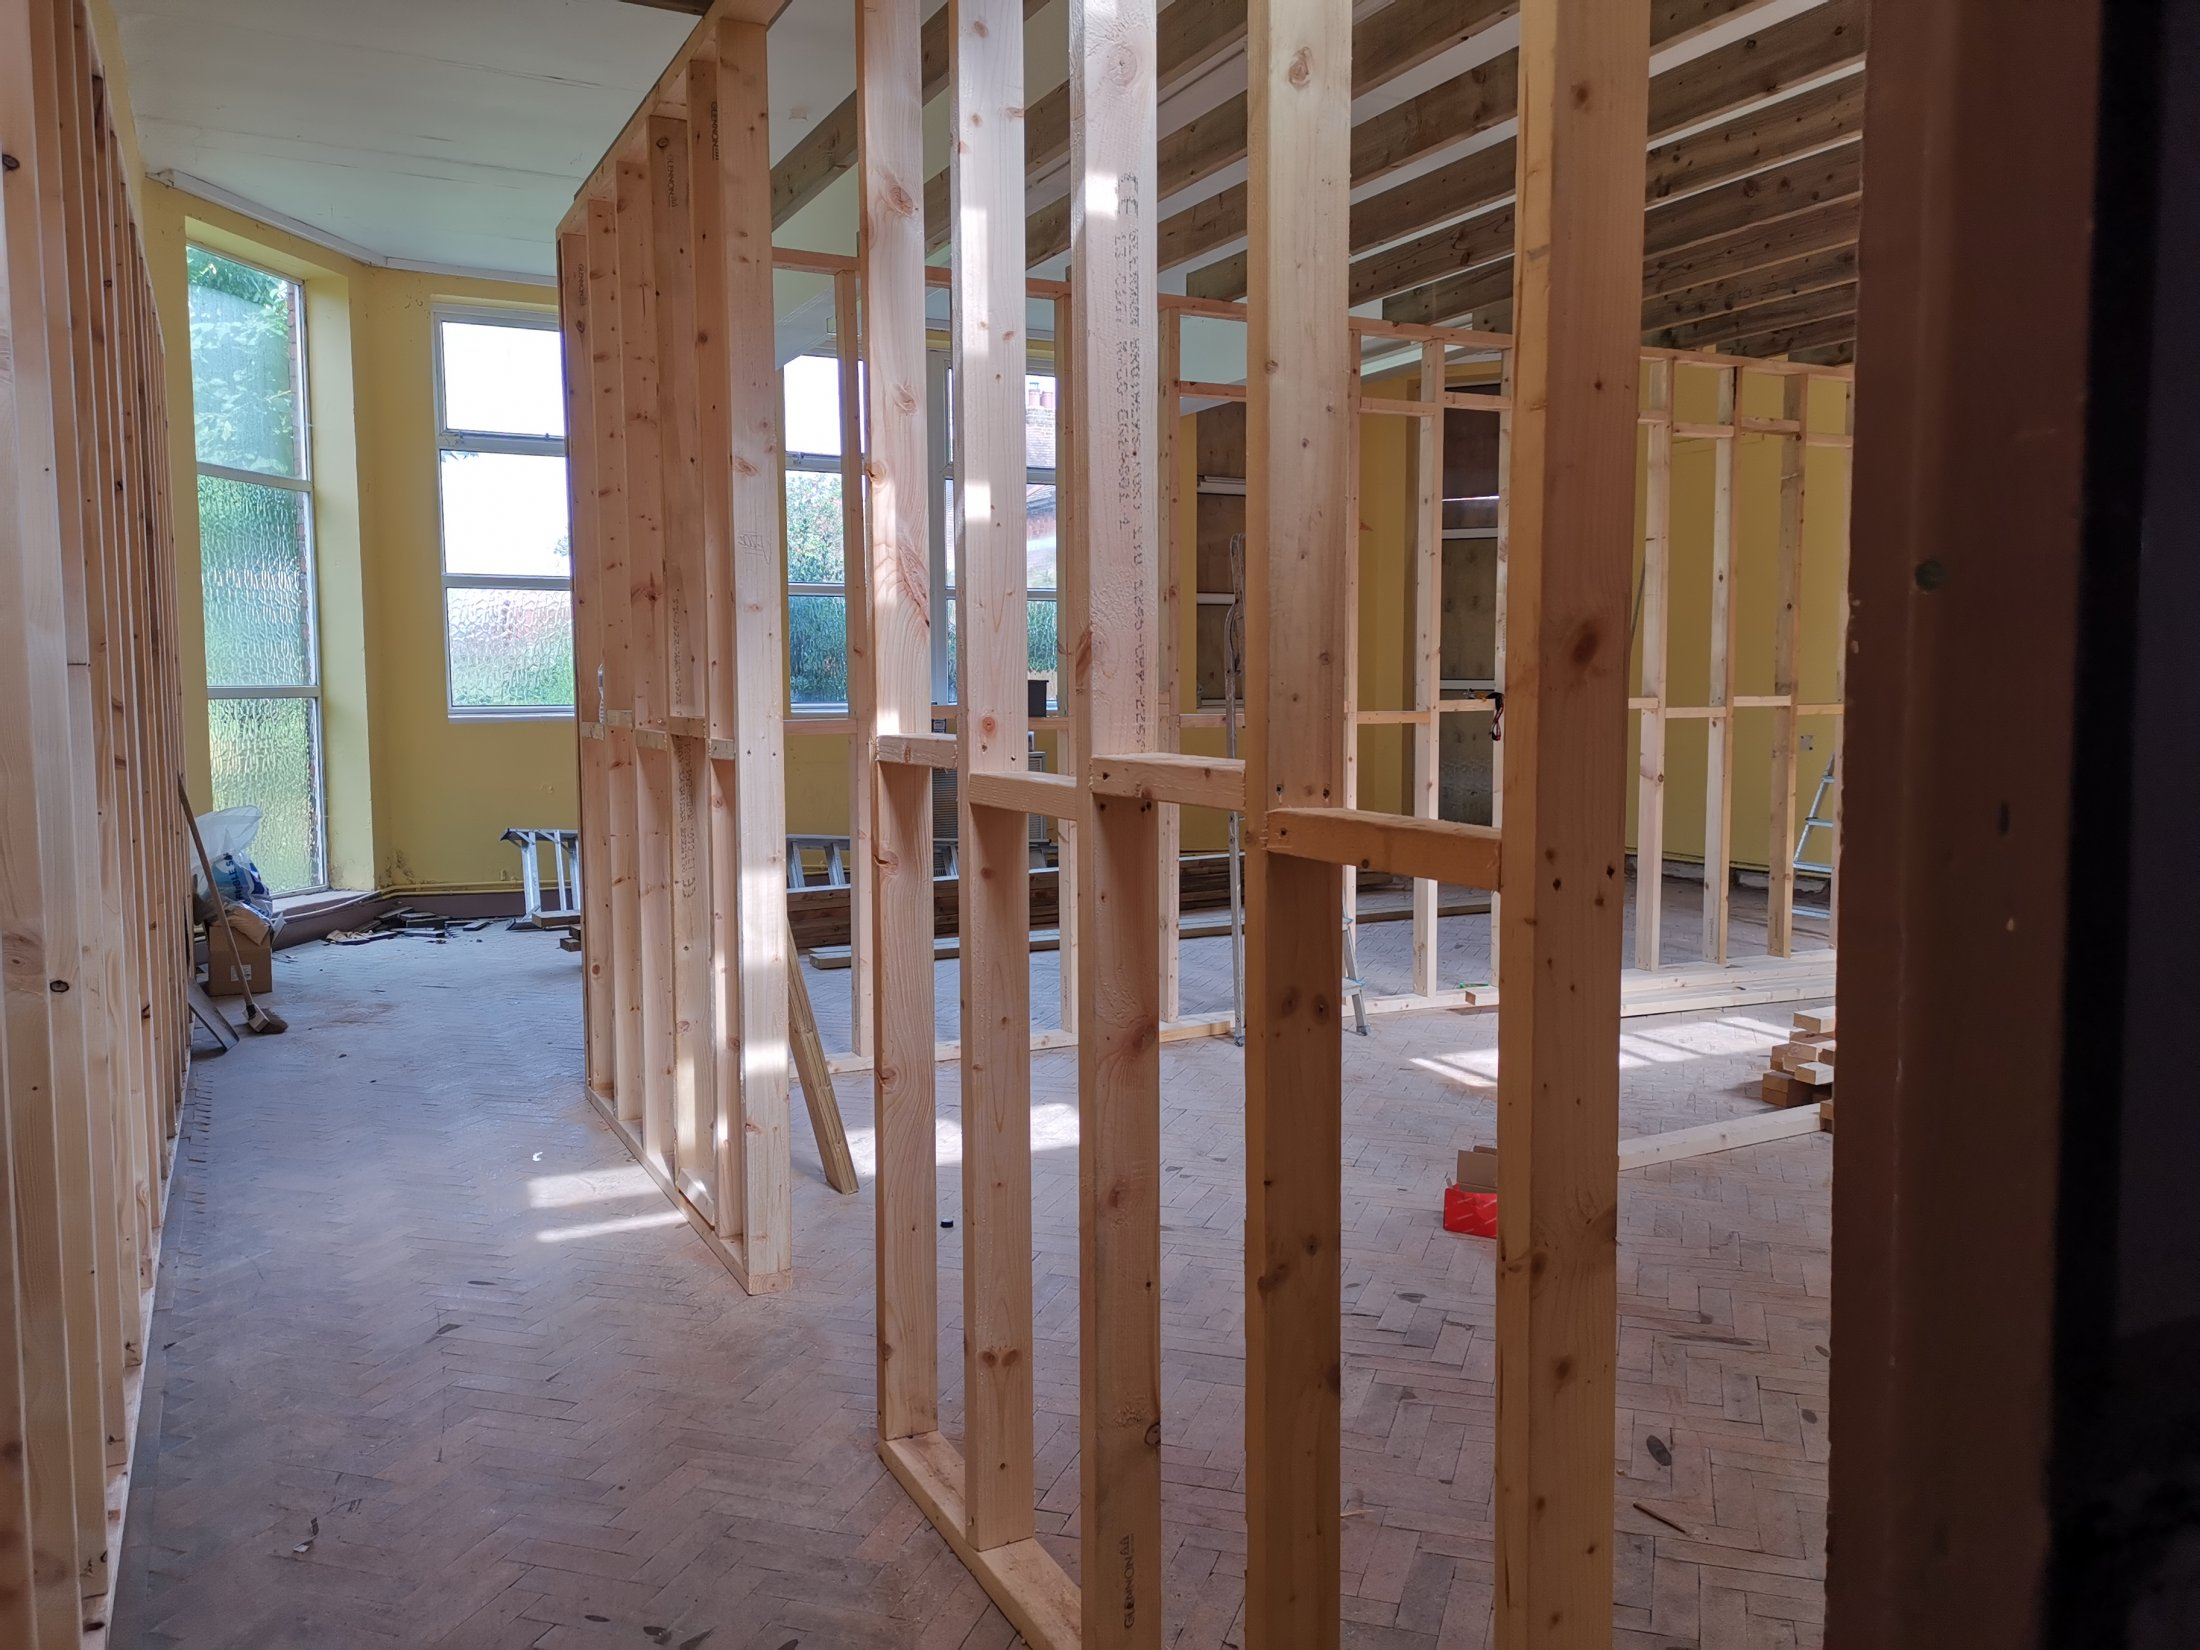 Putting up the partition wall between the Abu Hassan and Ulverlie classrooms.